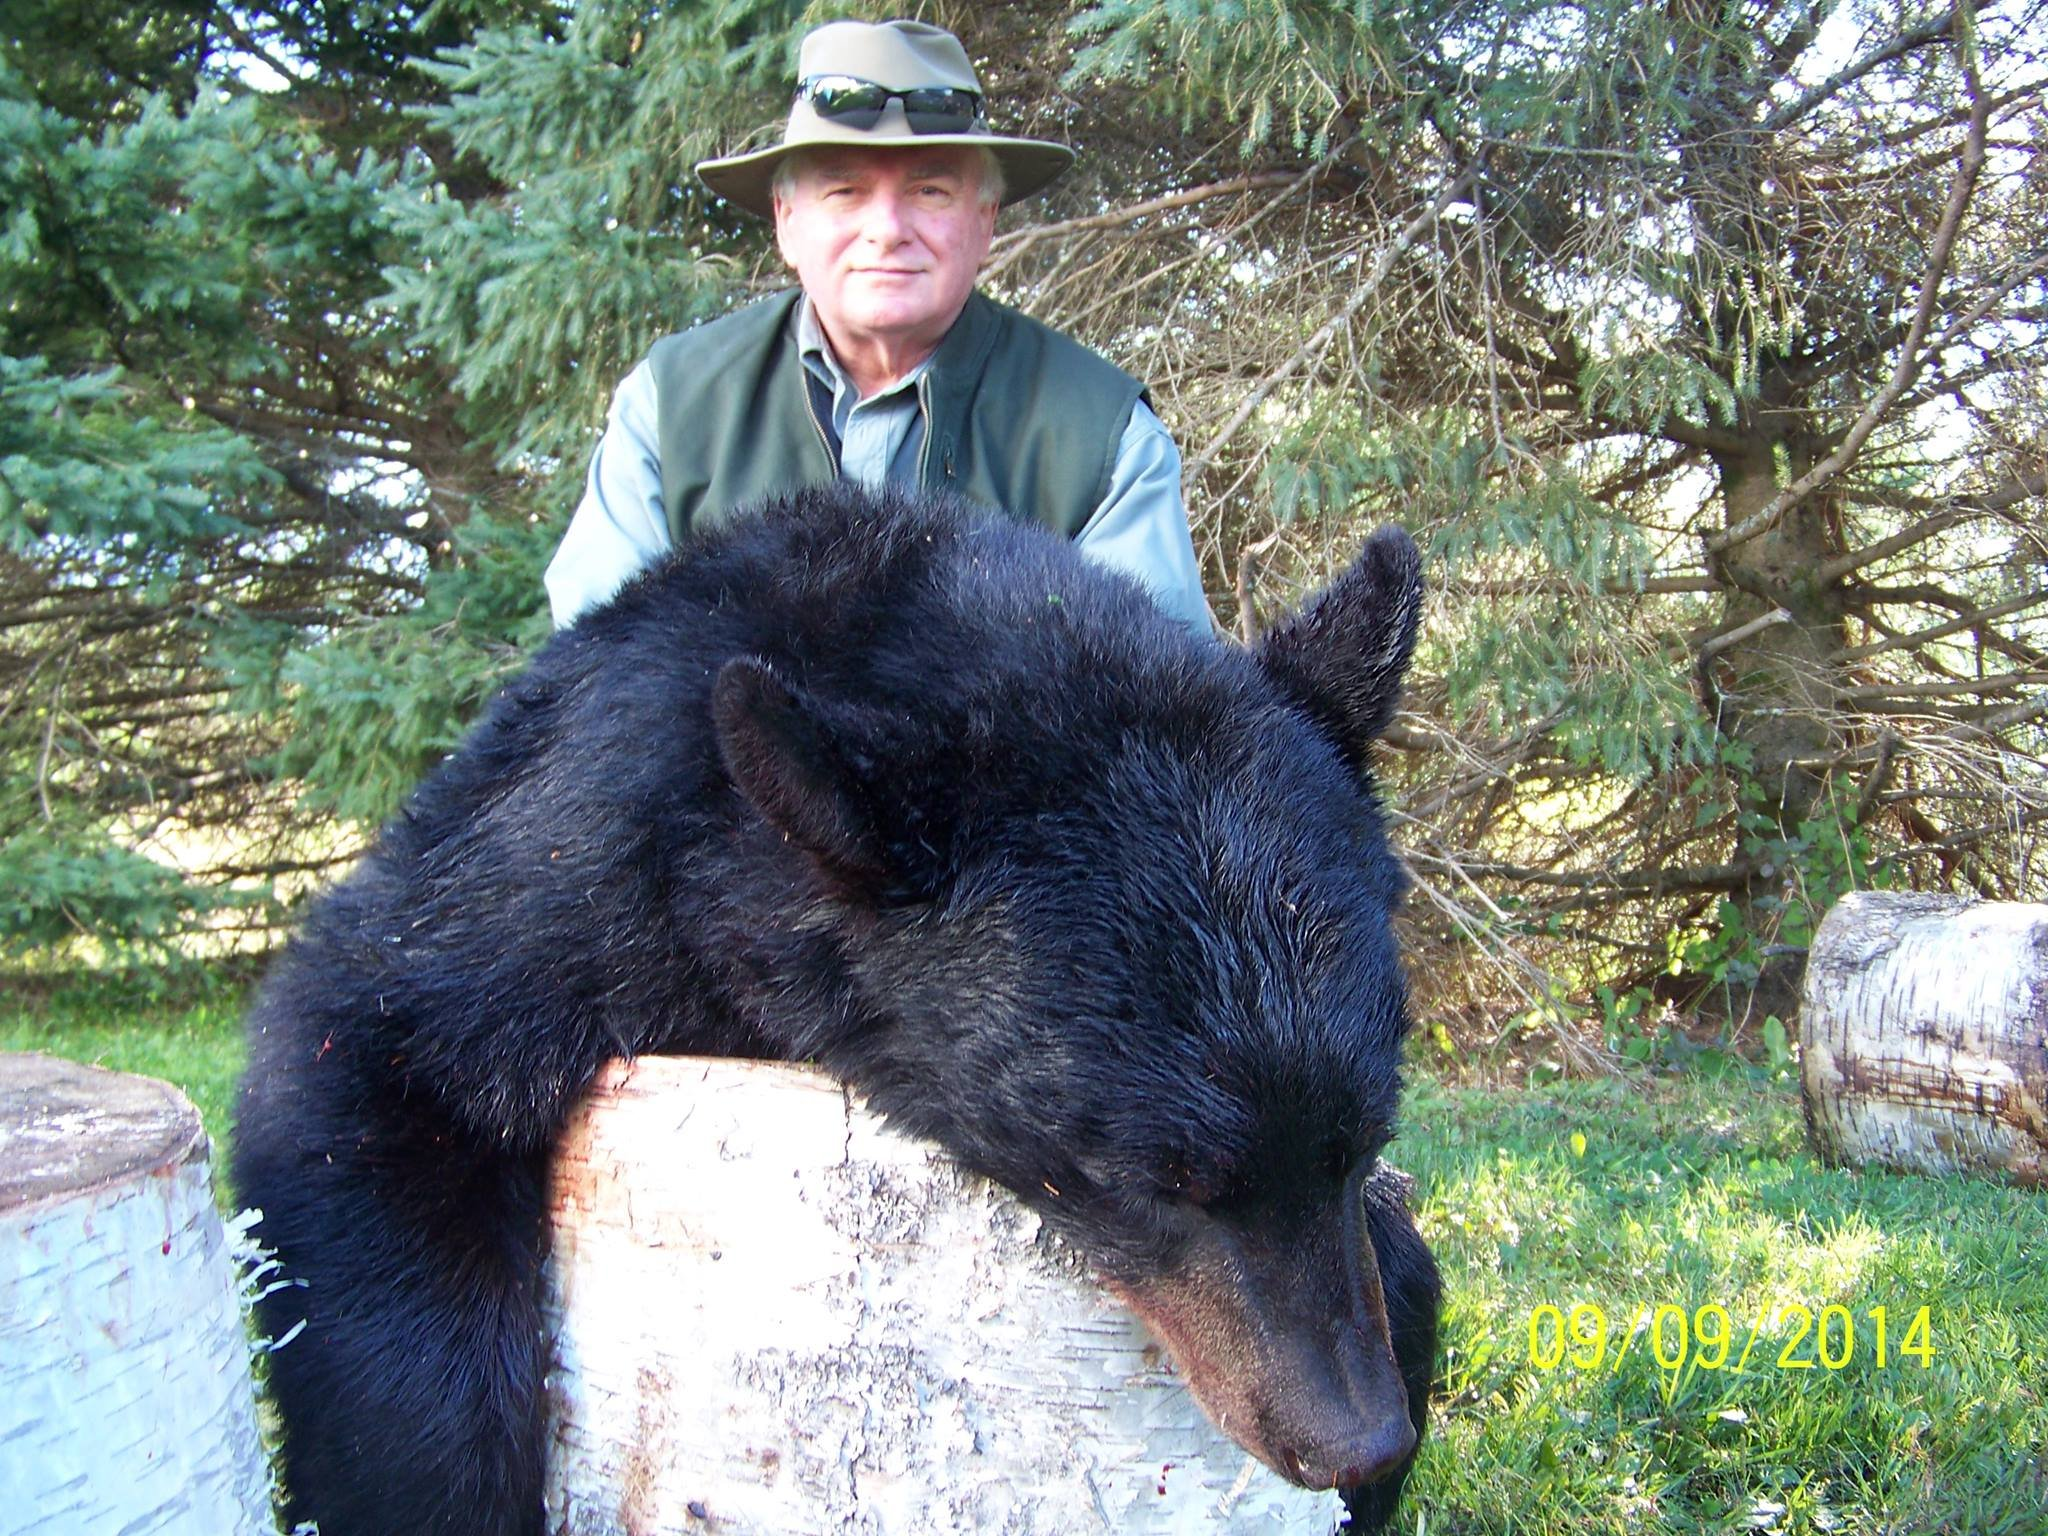 Lots of opportunities to view Maine's elusive black bear.